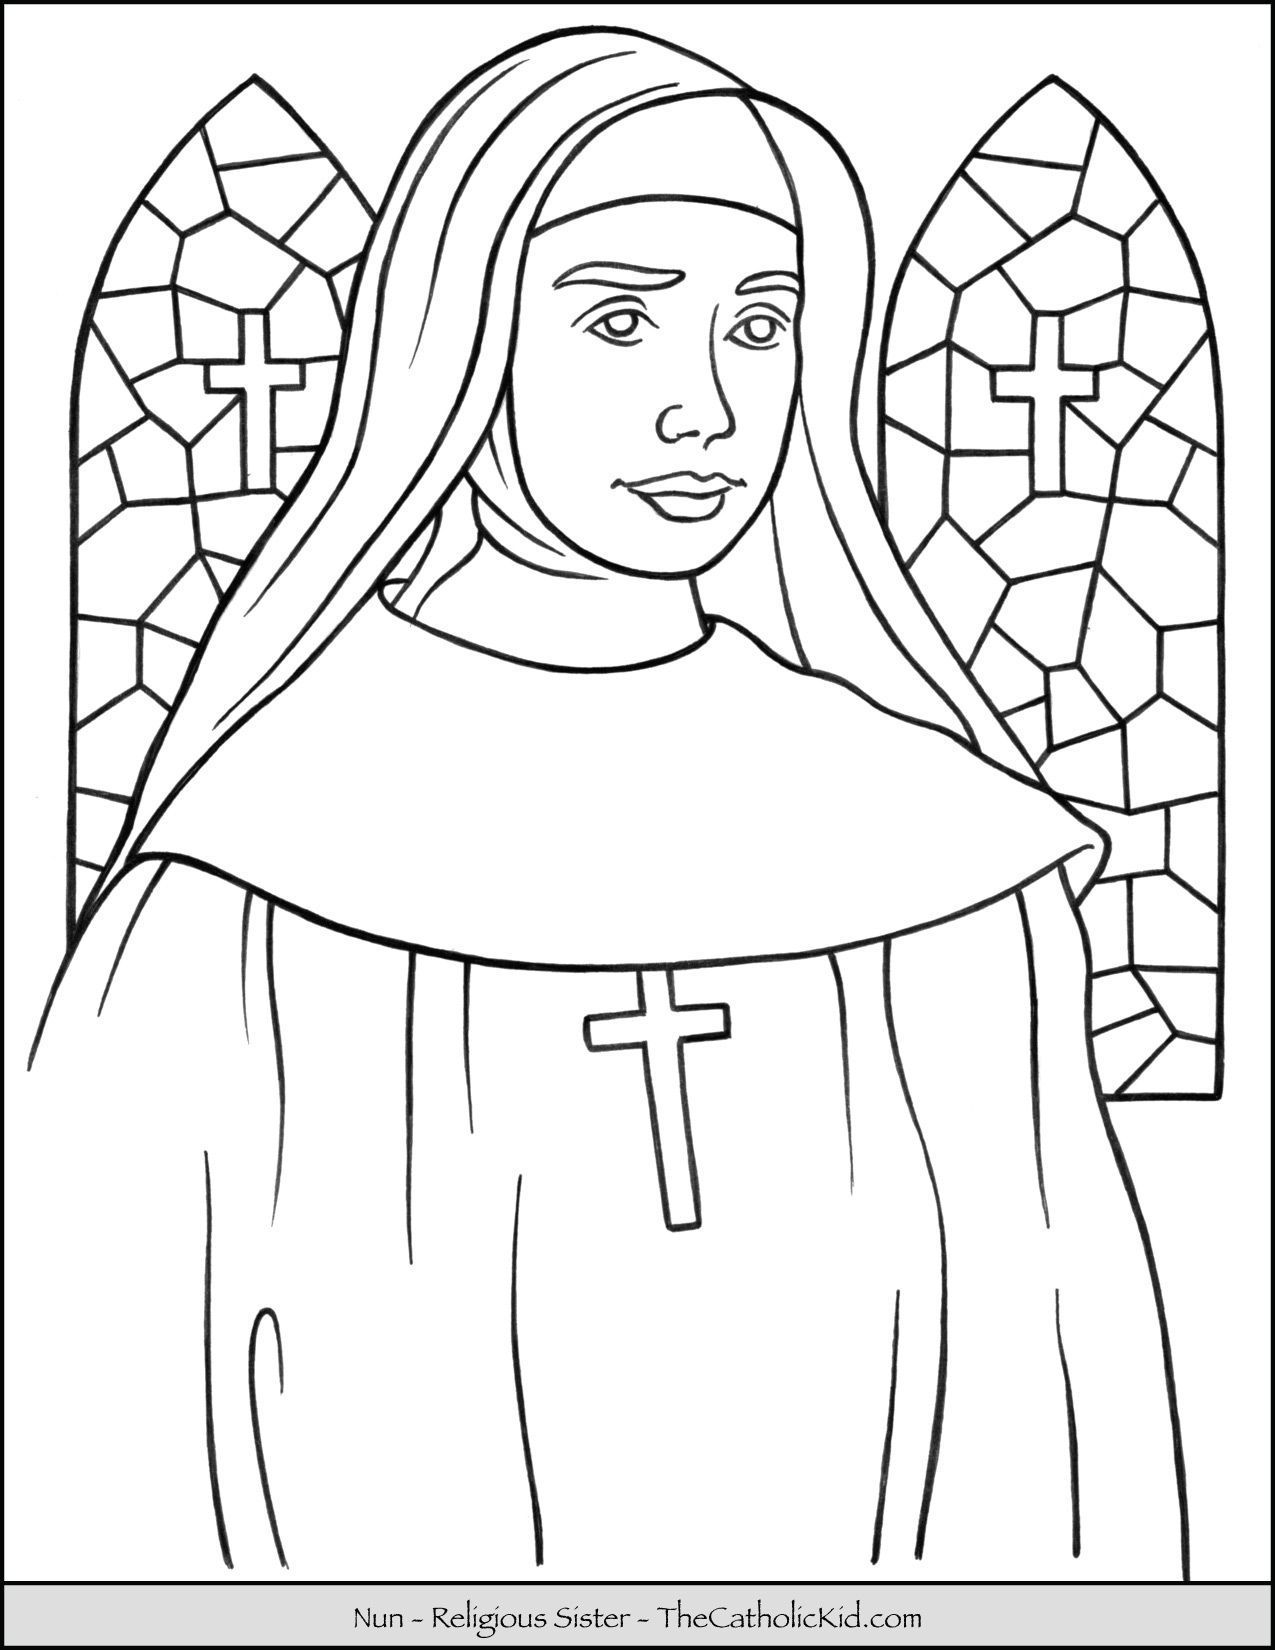 Pin Em Catholic Coloring Pages For Kids